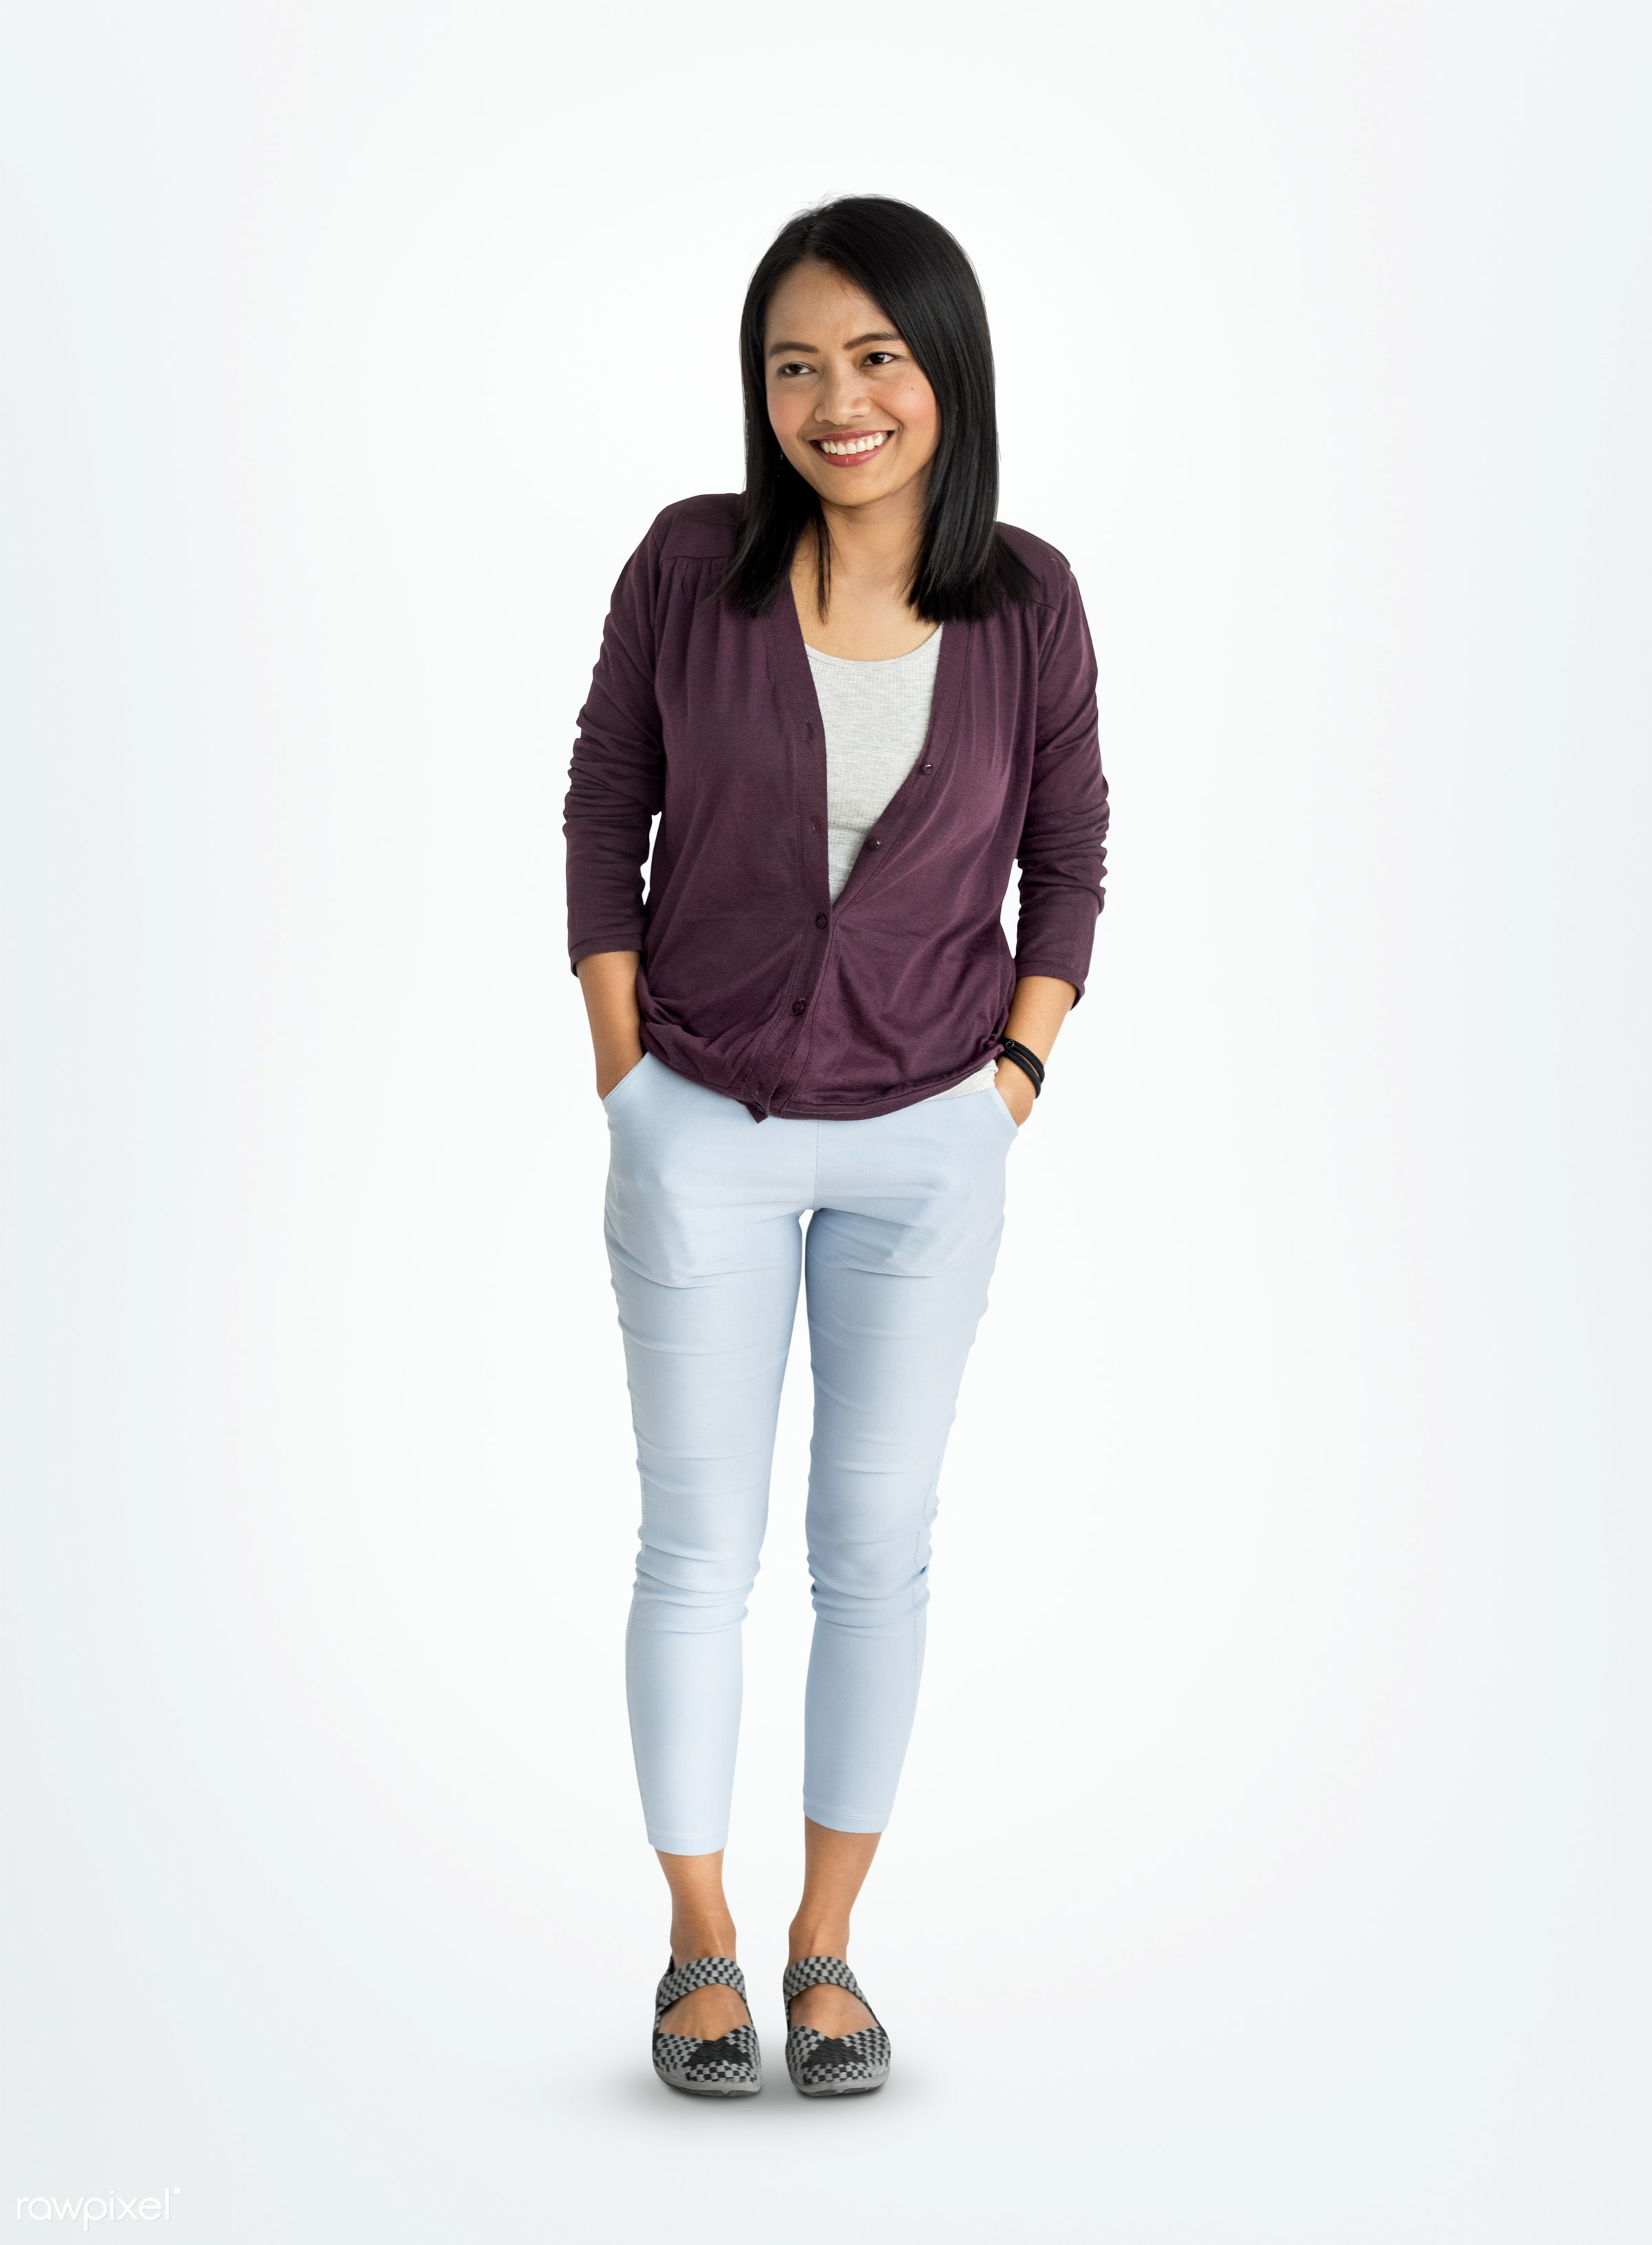 Young Woman Smiling Cheerful Concept - studio, expression, caucasian, asian, student, woman, lifestyle, lovely, smile,...